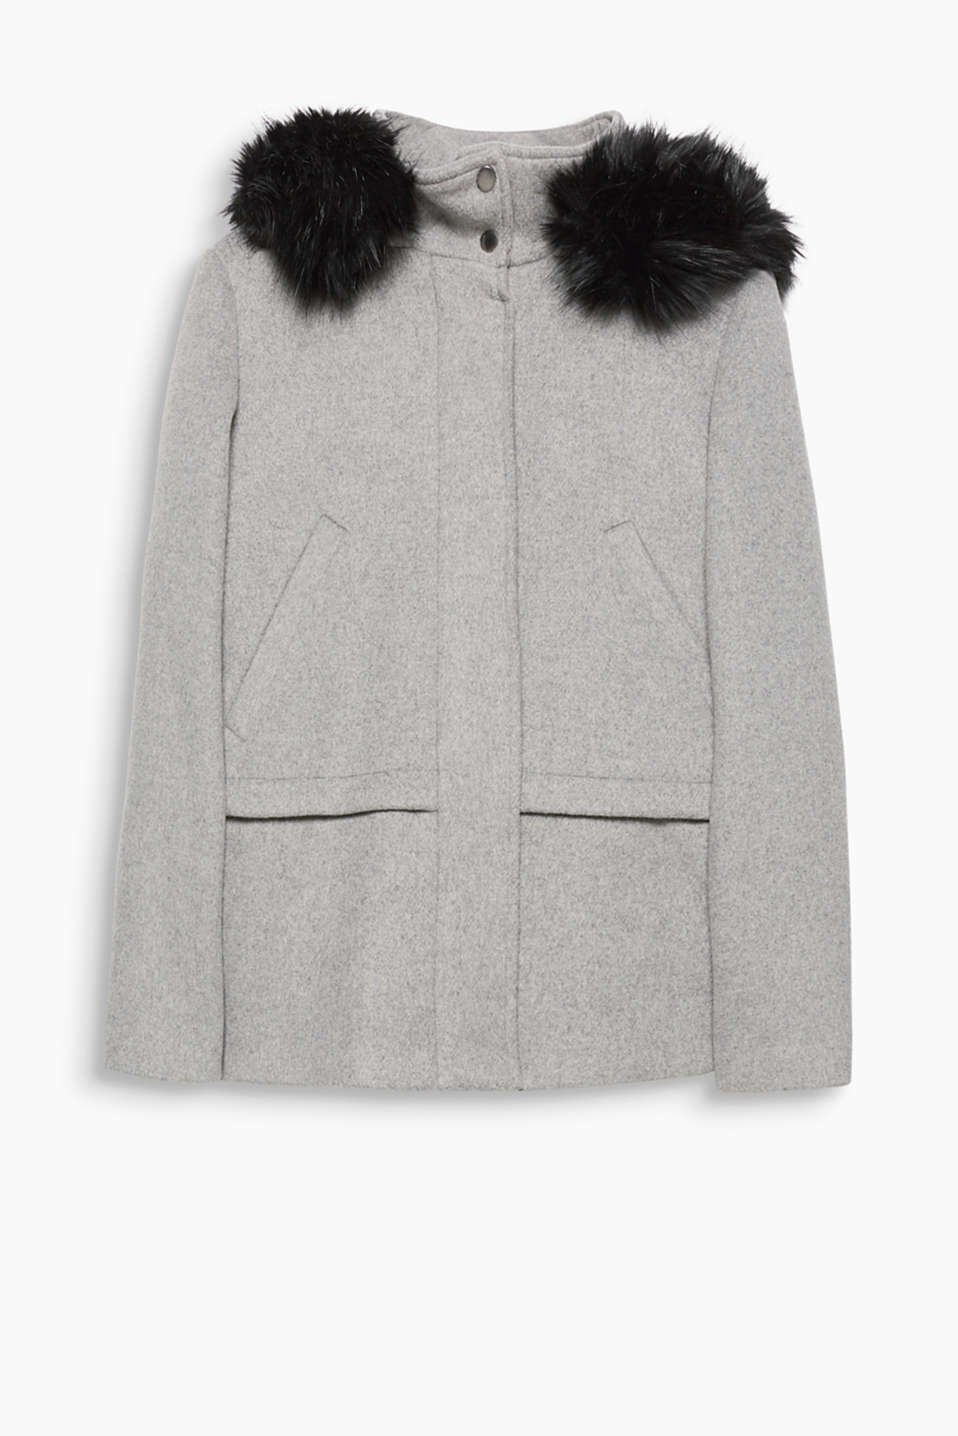 Soft and sophisticated: melange jacket in snug blended wool with a hood and lush faux fur trim